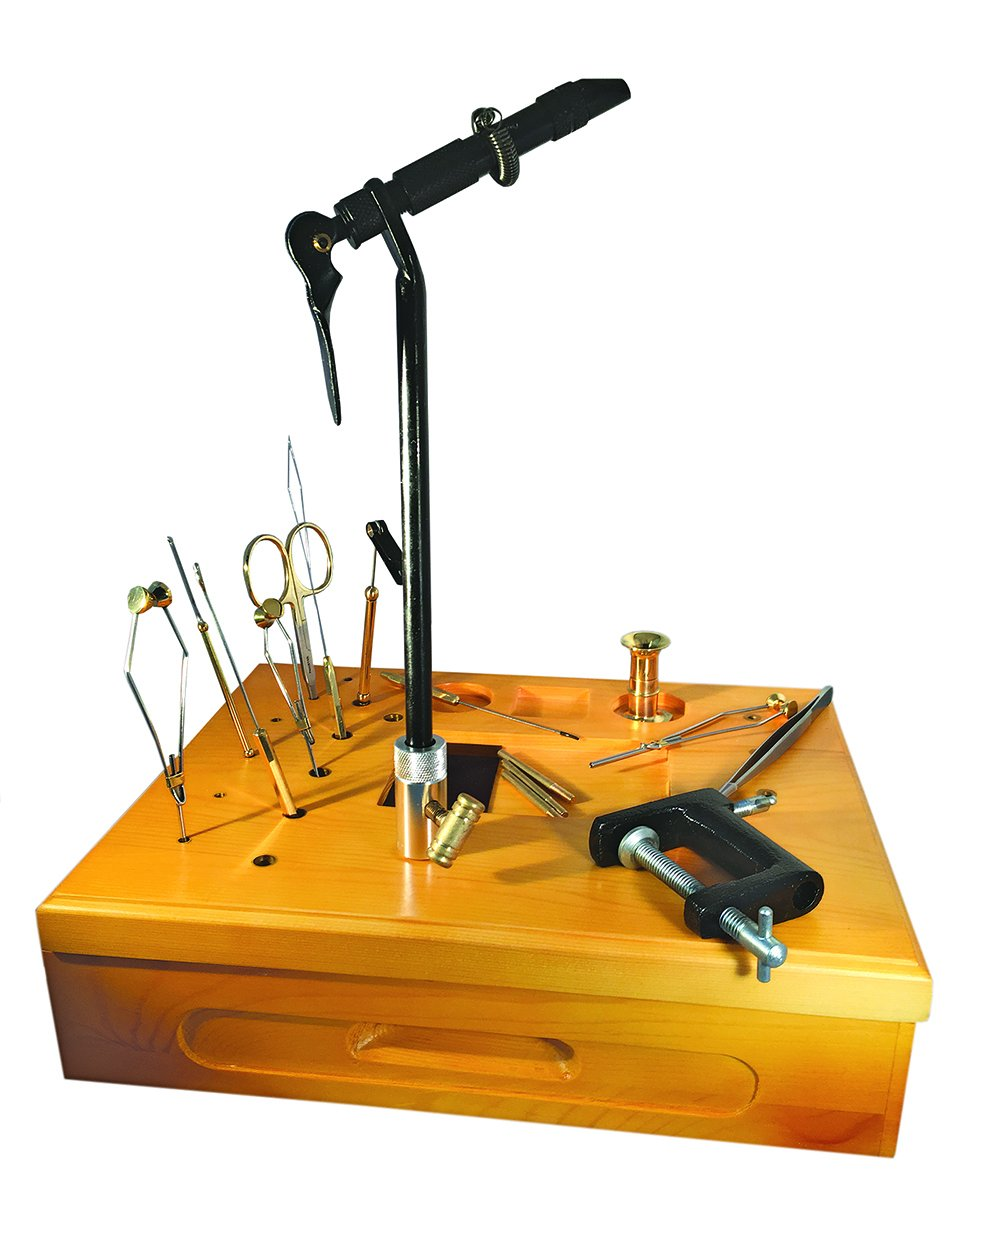 Creative Angler Wooden Fly Tying Station with Super AA Vise for Fly Tying or Tying Flies by Creative Angler